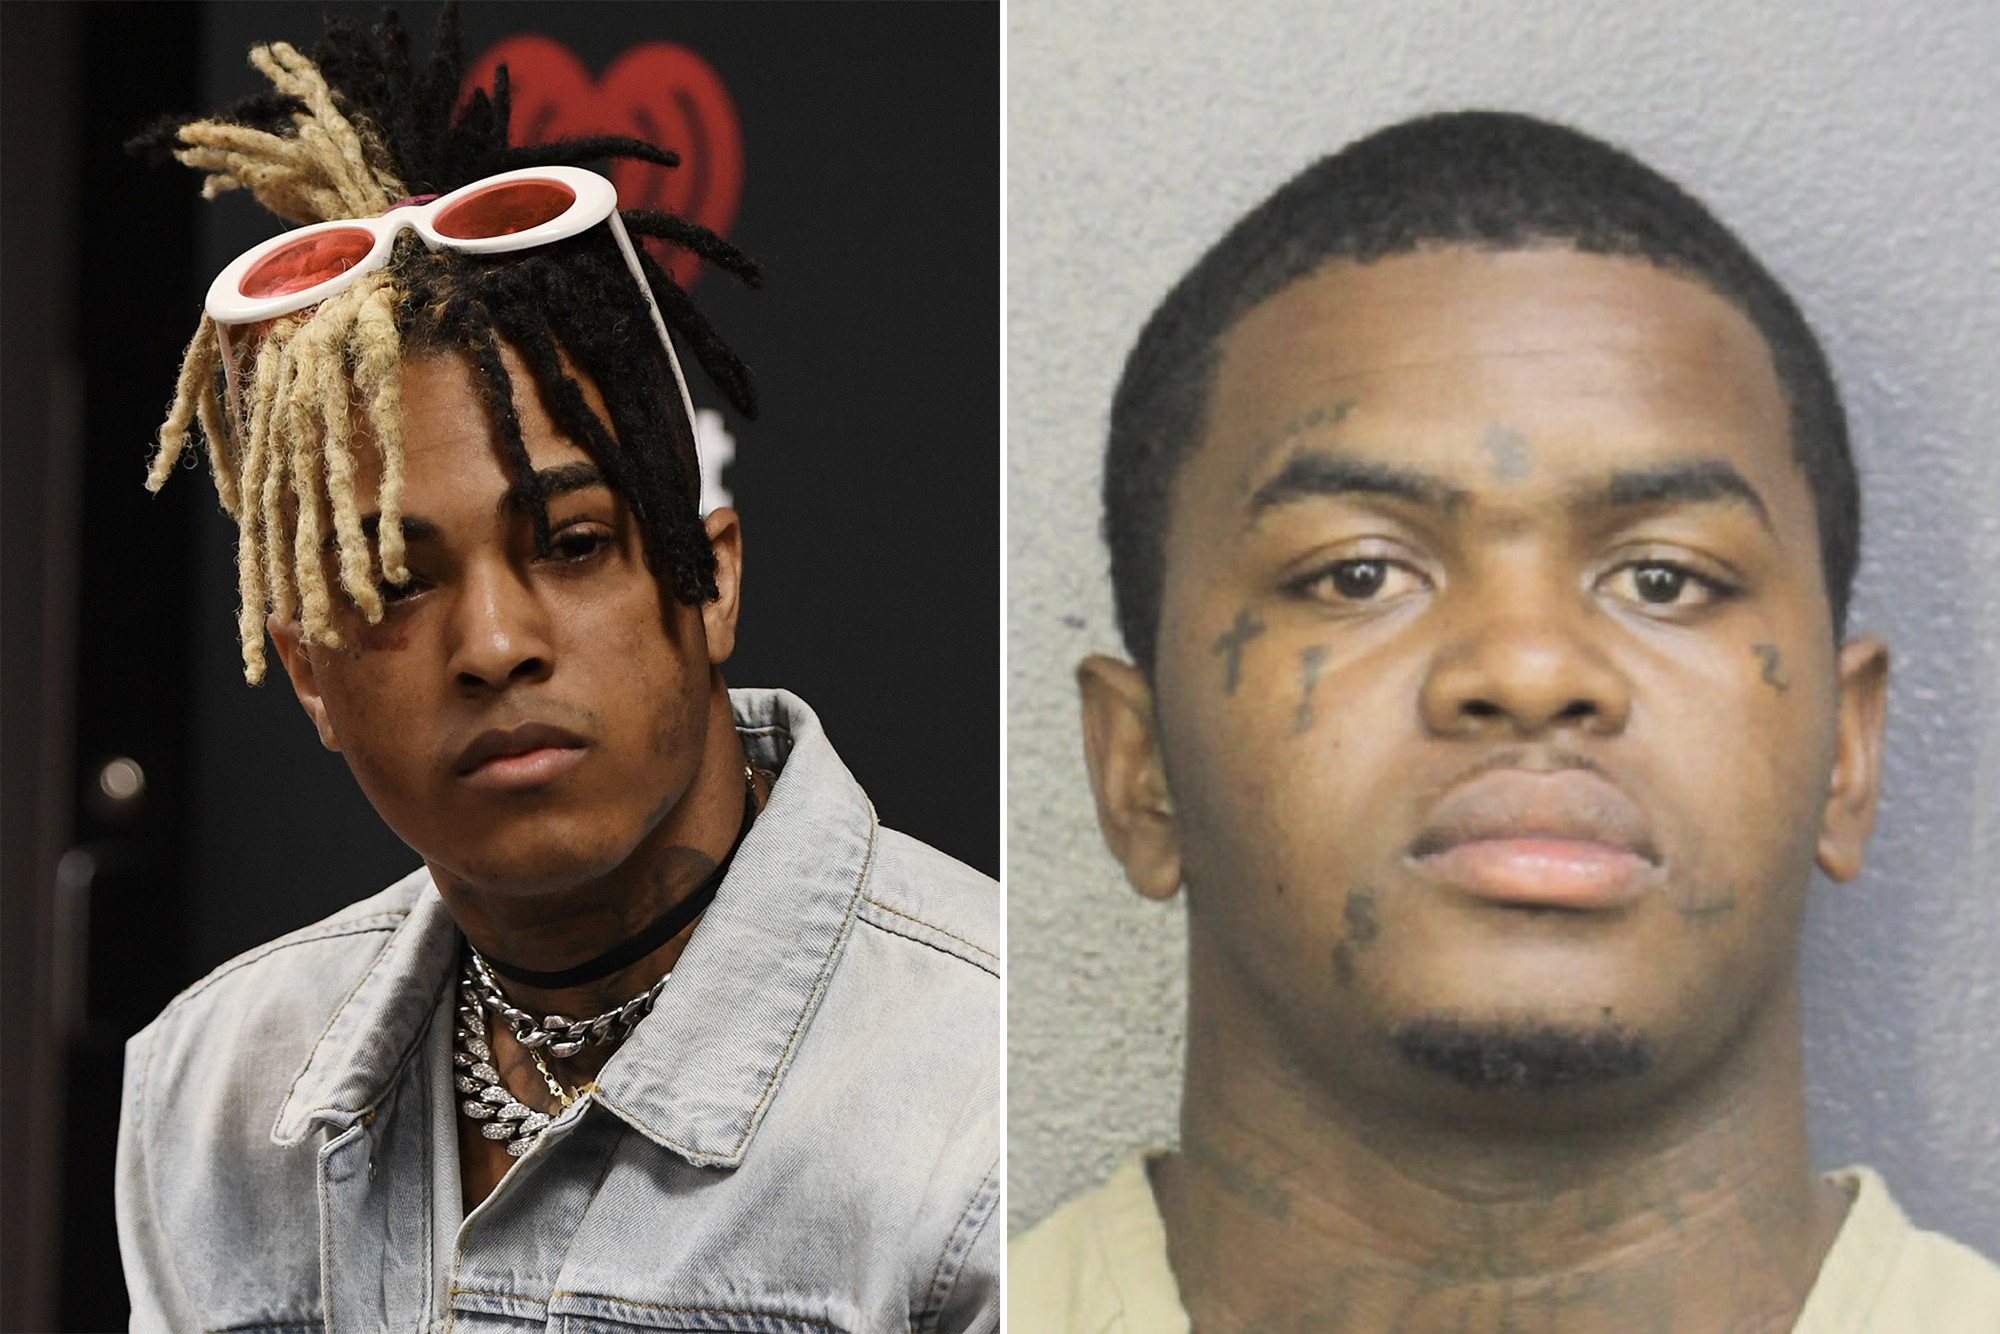 180621-arrest-made-in-xxxtentacion-murder-feature.jpg